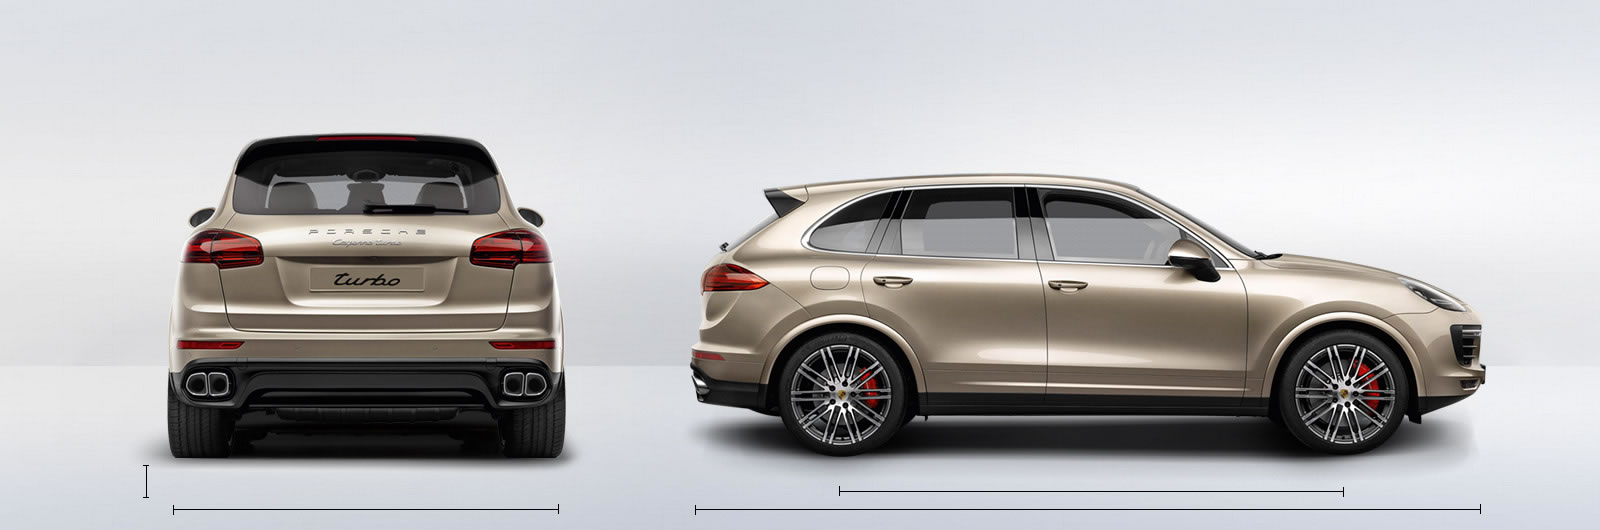 Cayenne Turbo Specifications